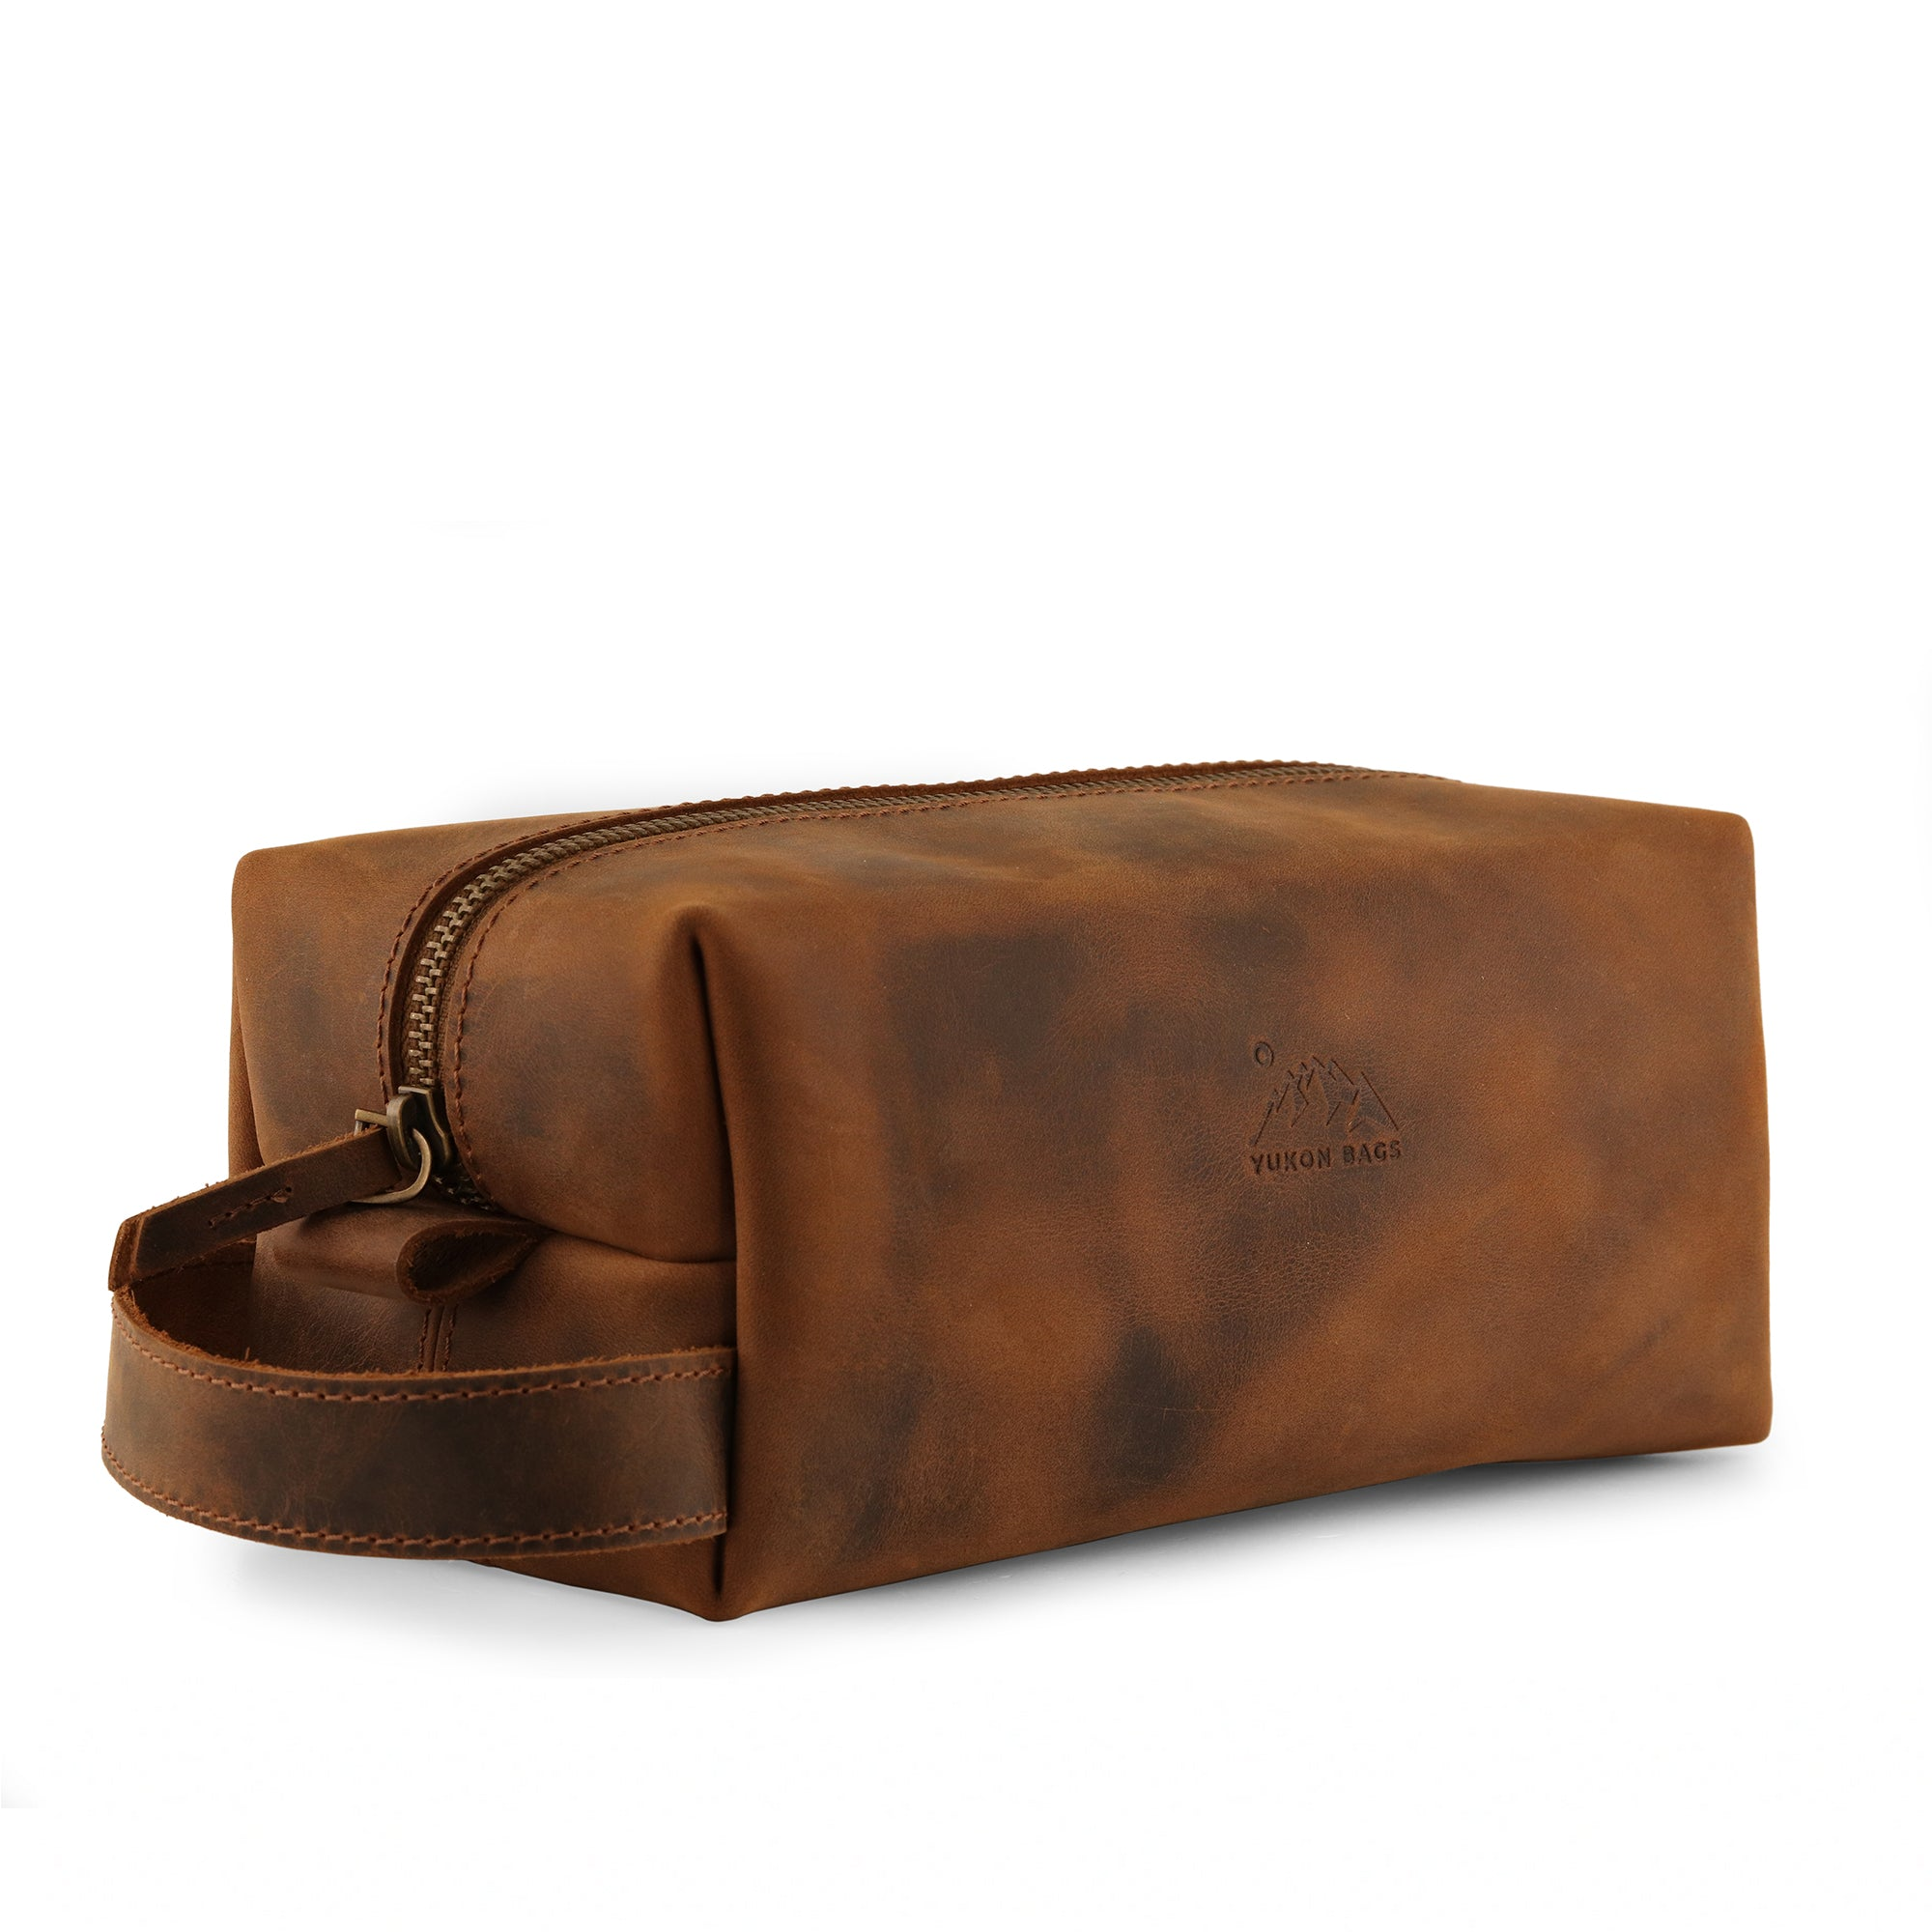 Steele Leather Toiletry Bag - Dopp Kit - Shave Kit